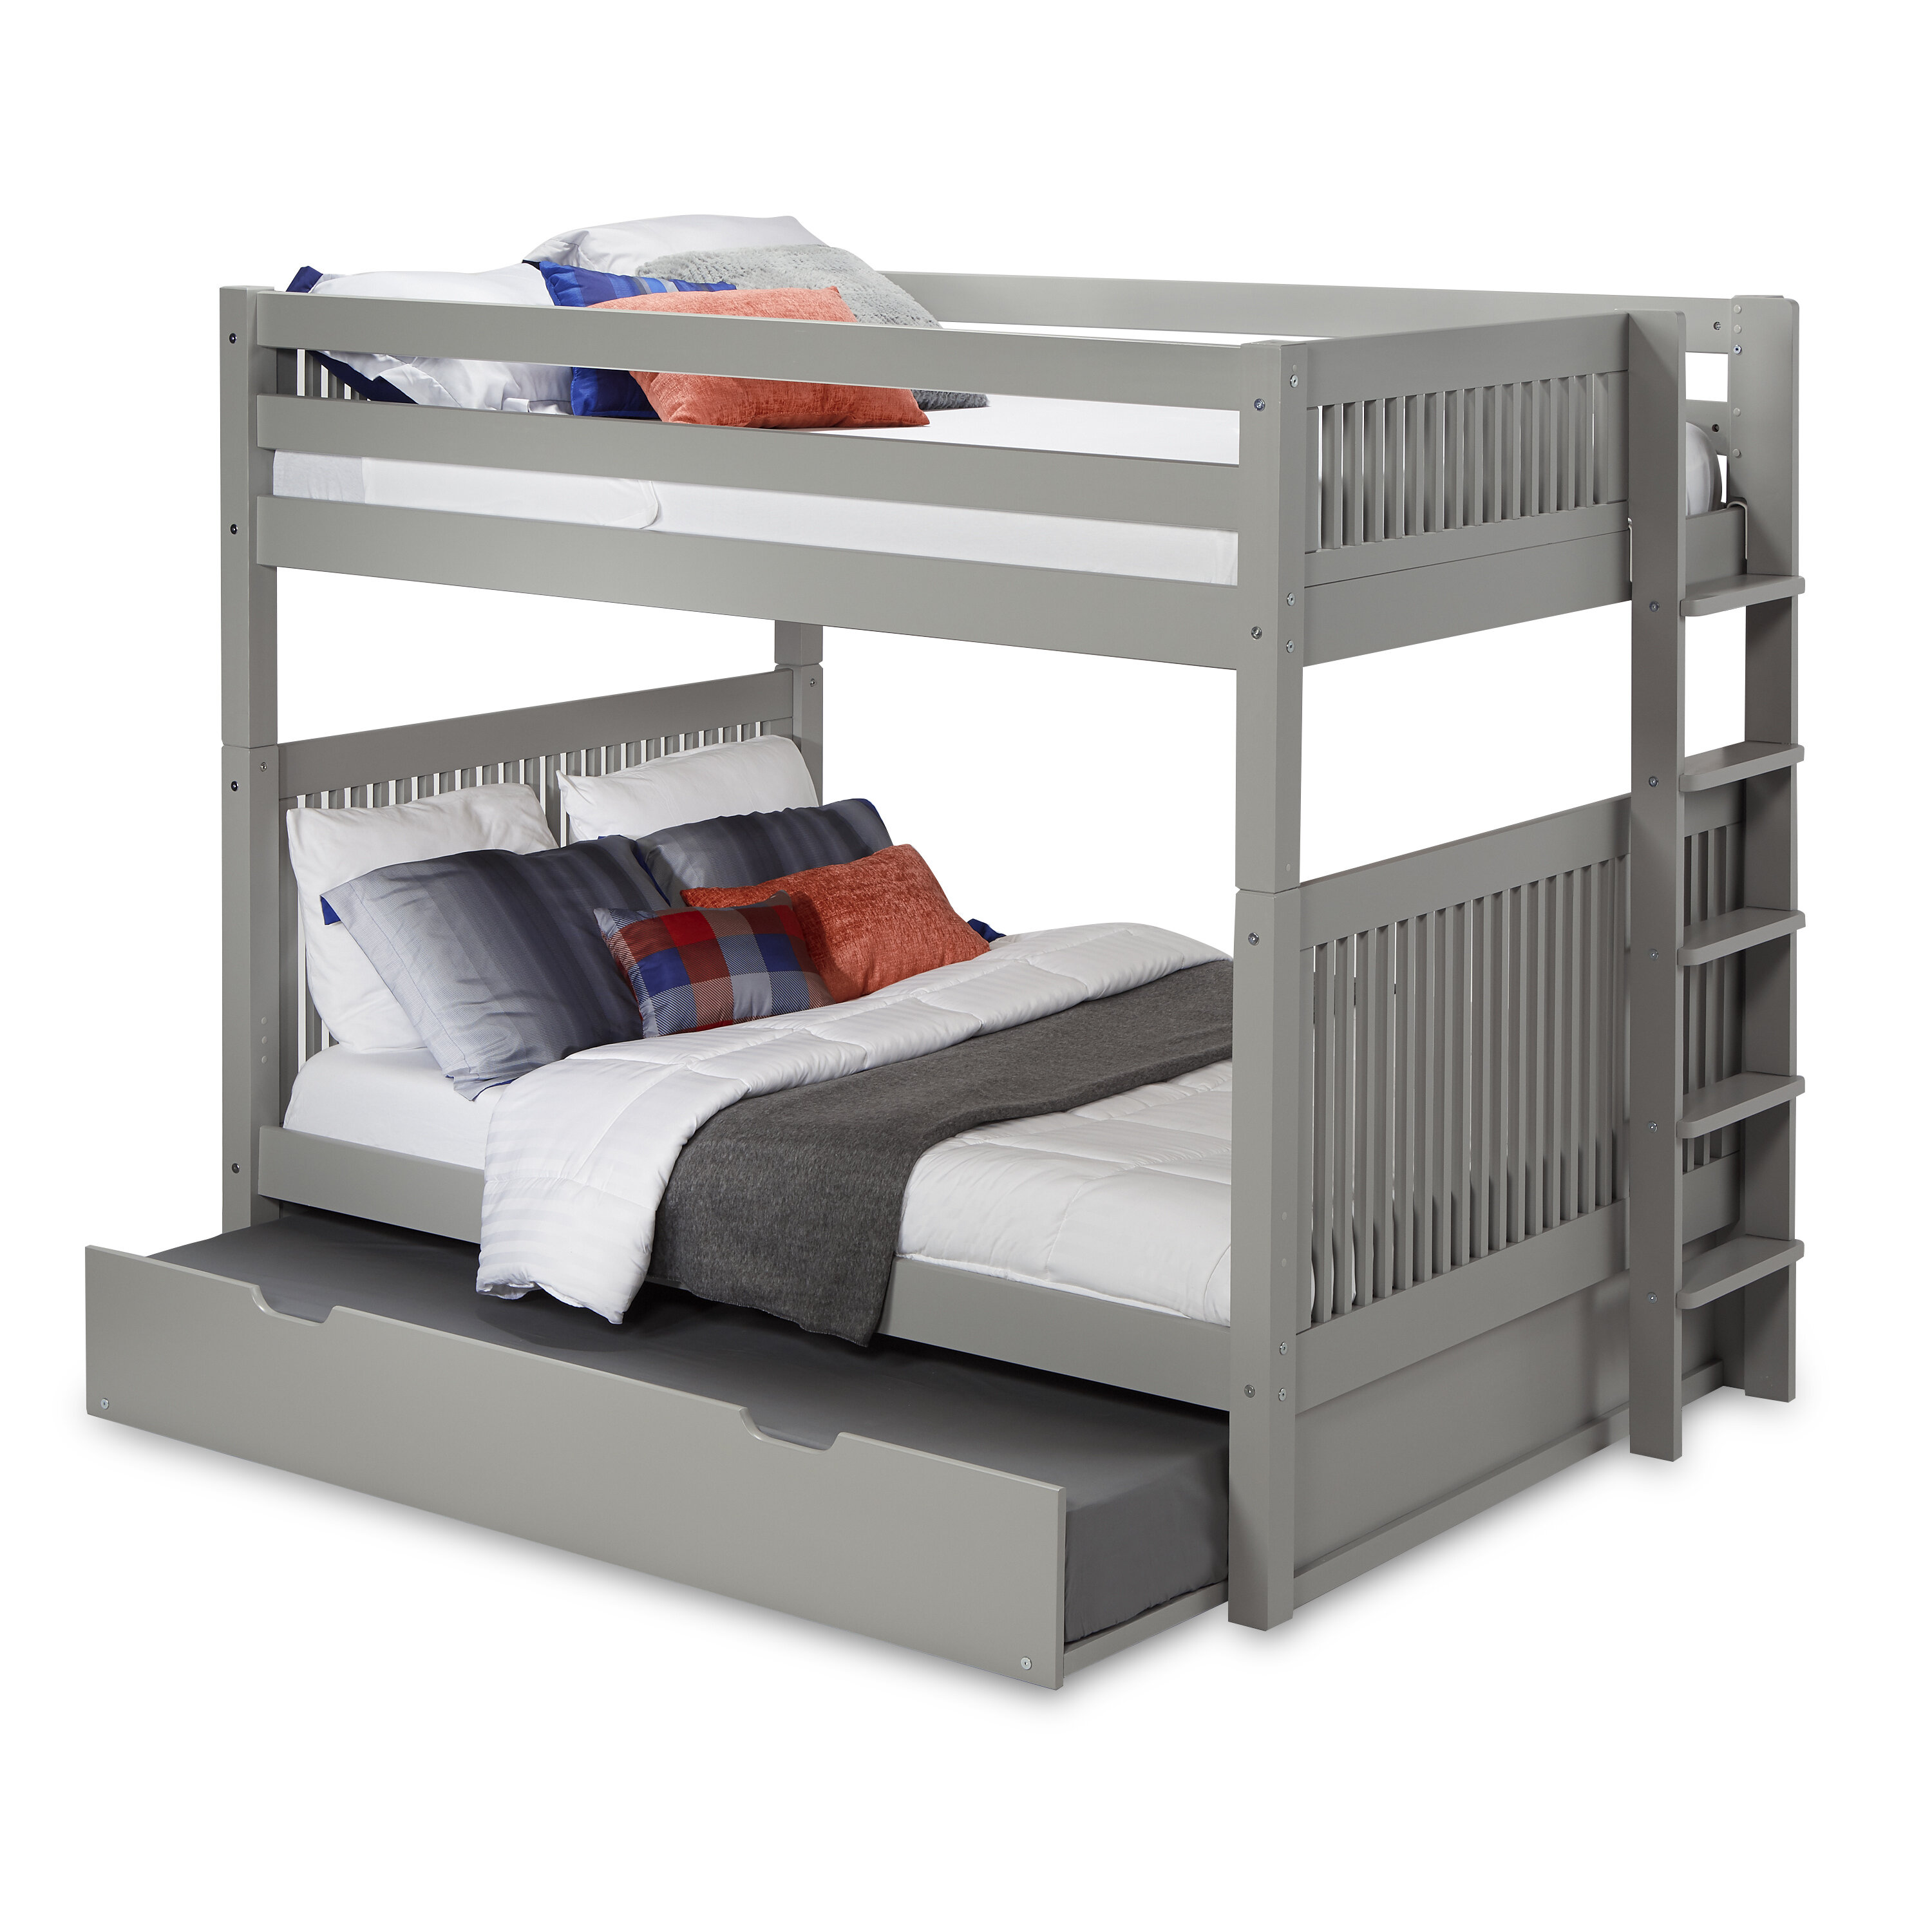 Picture of: Bunk Bed With Trundle